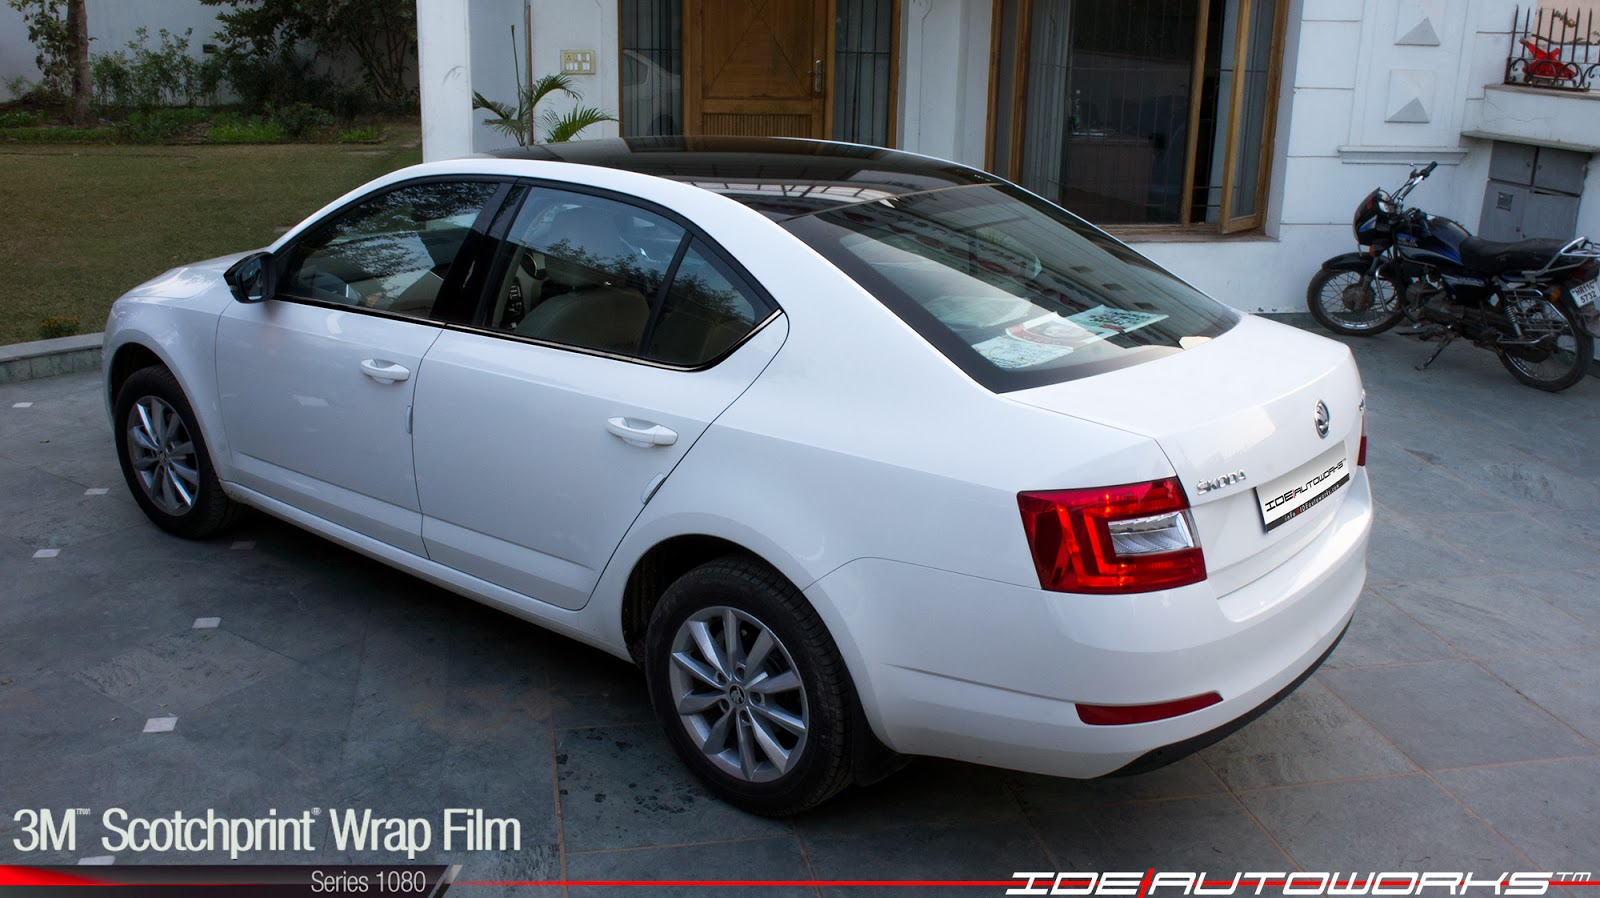 New Skoda Octavia 3m 1080 Scotchprint Roof Wrap Ide